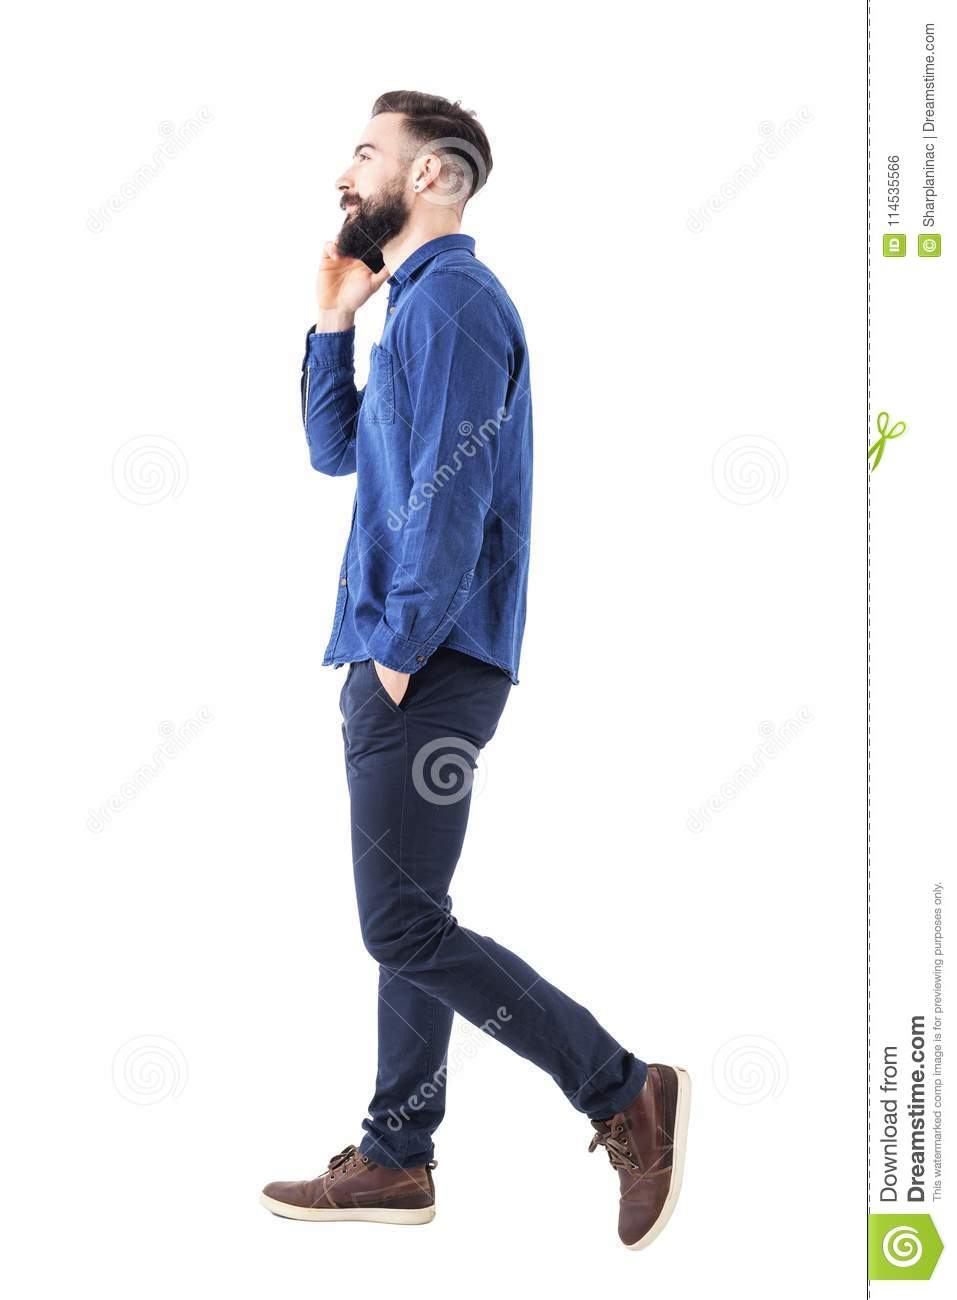 Happy confident successful business man walking and talking on cell phone with hands in pockets looking up